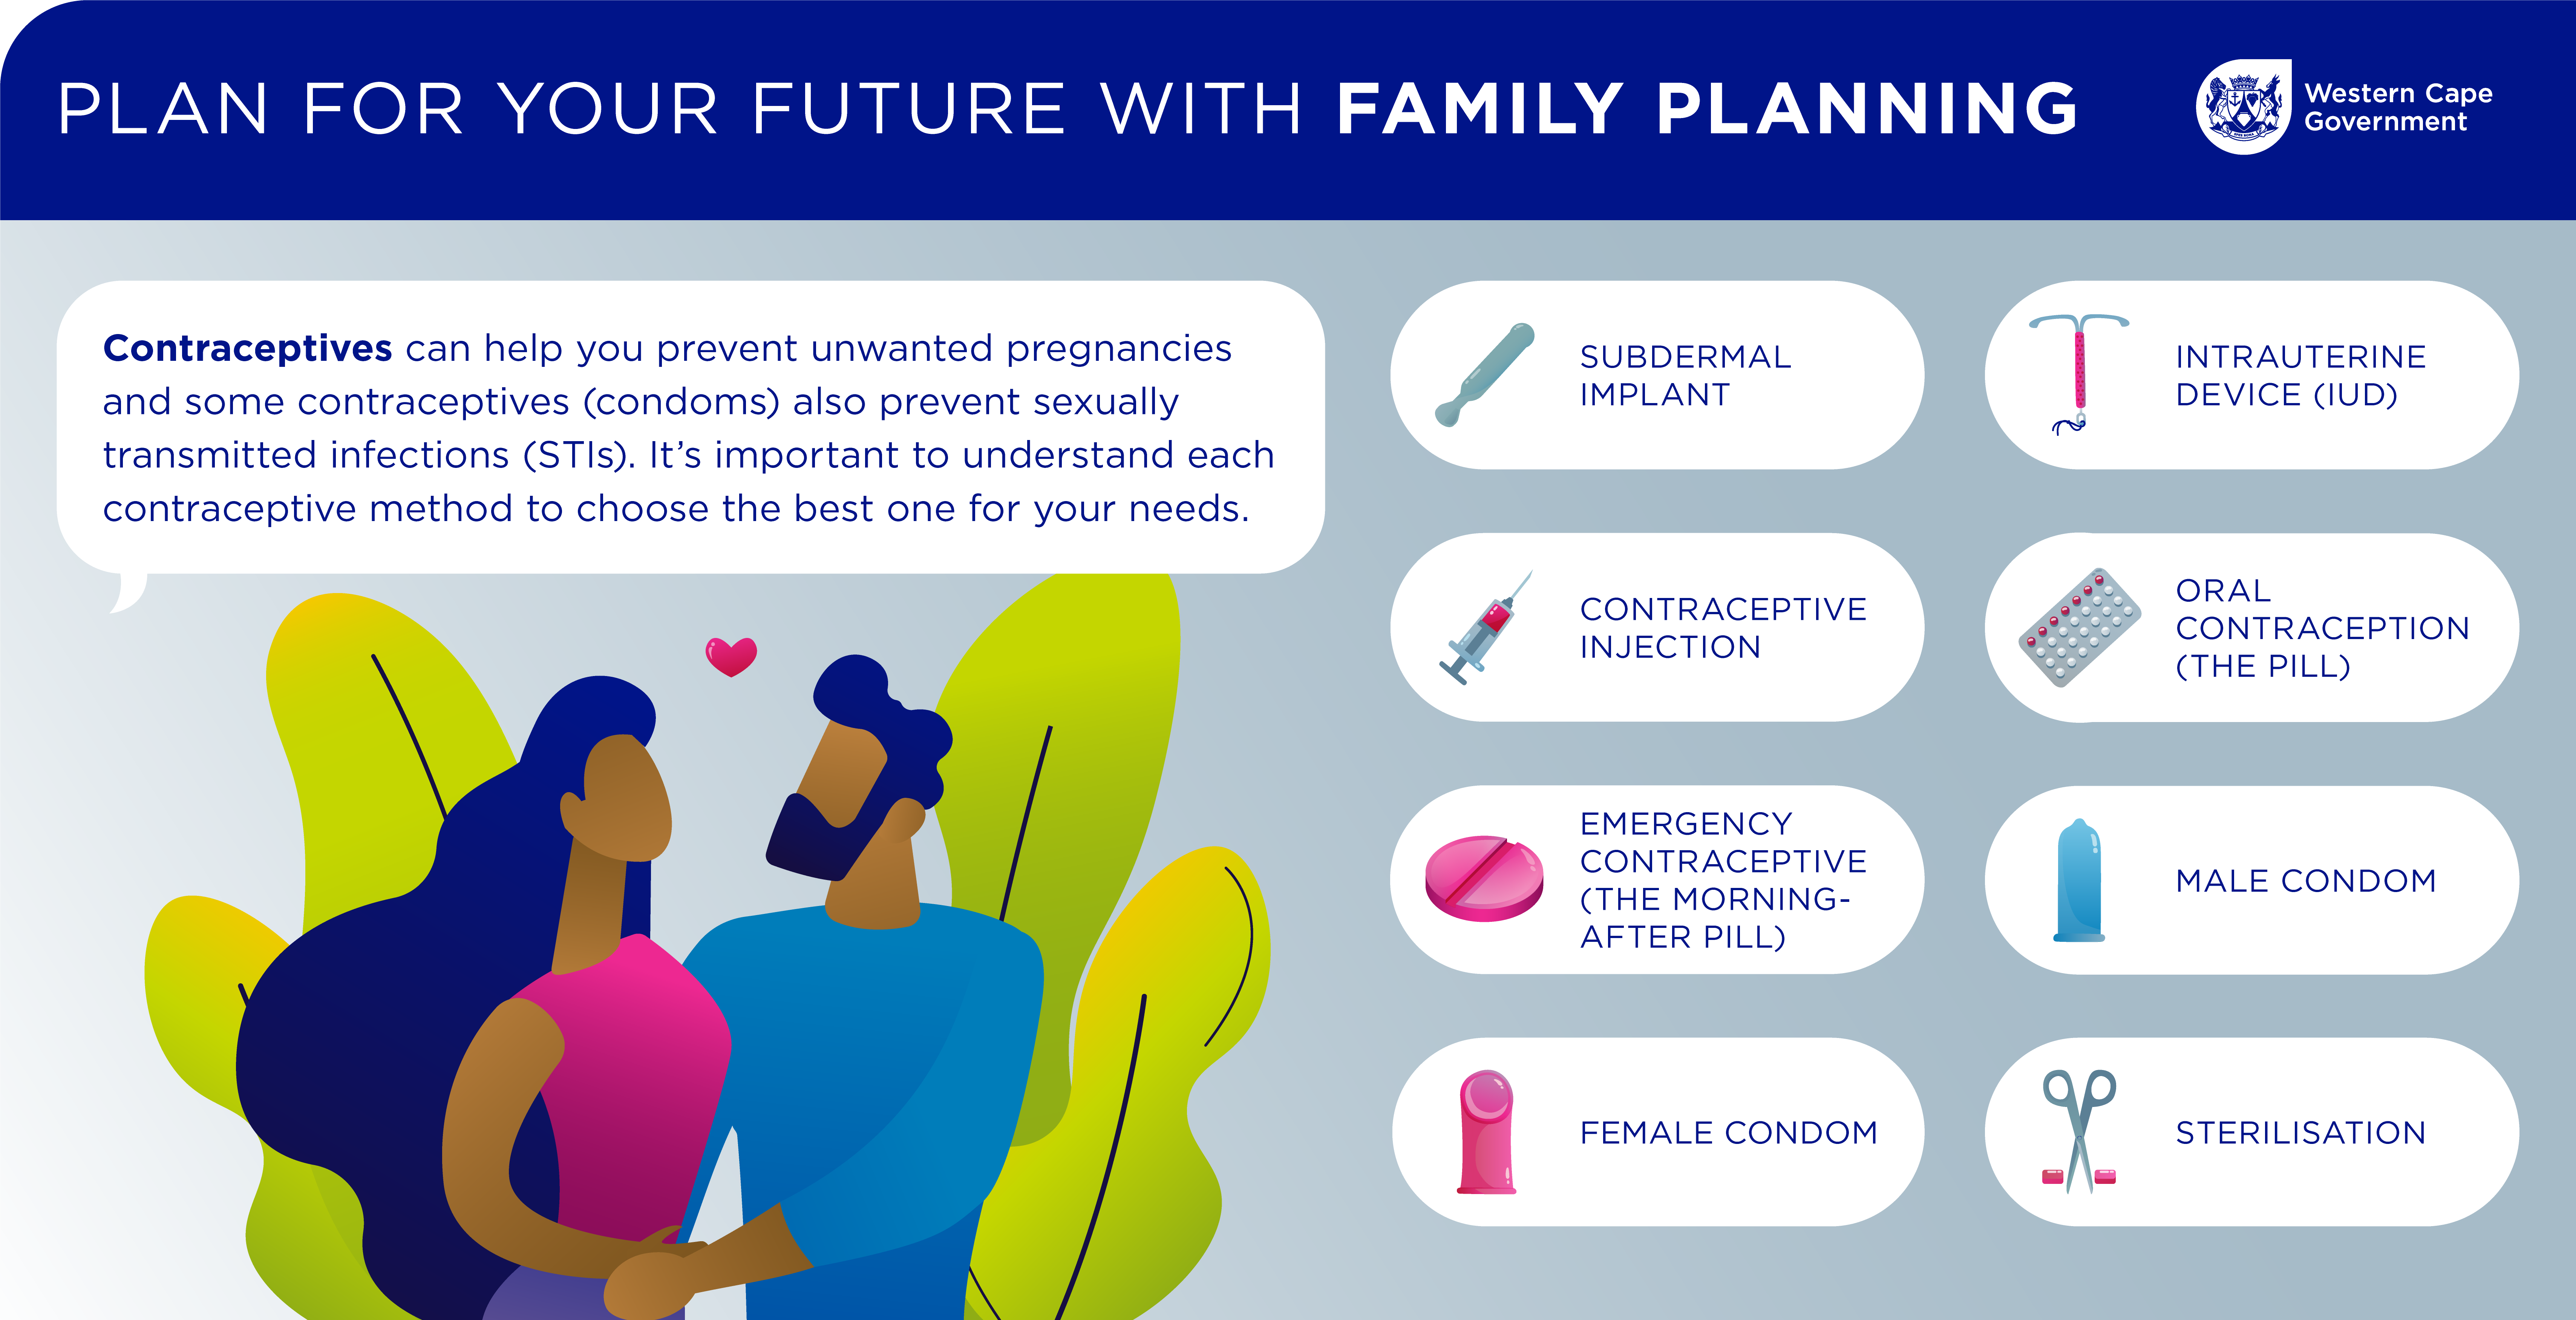 PLAN FOR YOUR FUTURE WITH FAMILY PLANNING FEMALE CONDOM: Contraceptives can help you prevent unwanted pregnancies and some contraceptives (condoms) also prevent sexually transmitted infections (STIs). It's important to understand each contraceptive method